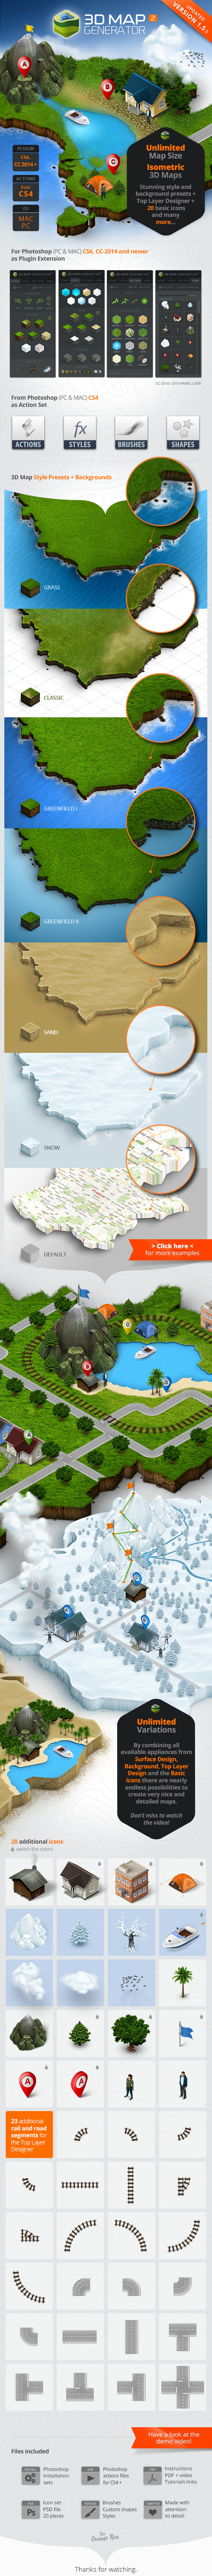 Web Graphics, Designs & Templates from GraphicRiver